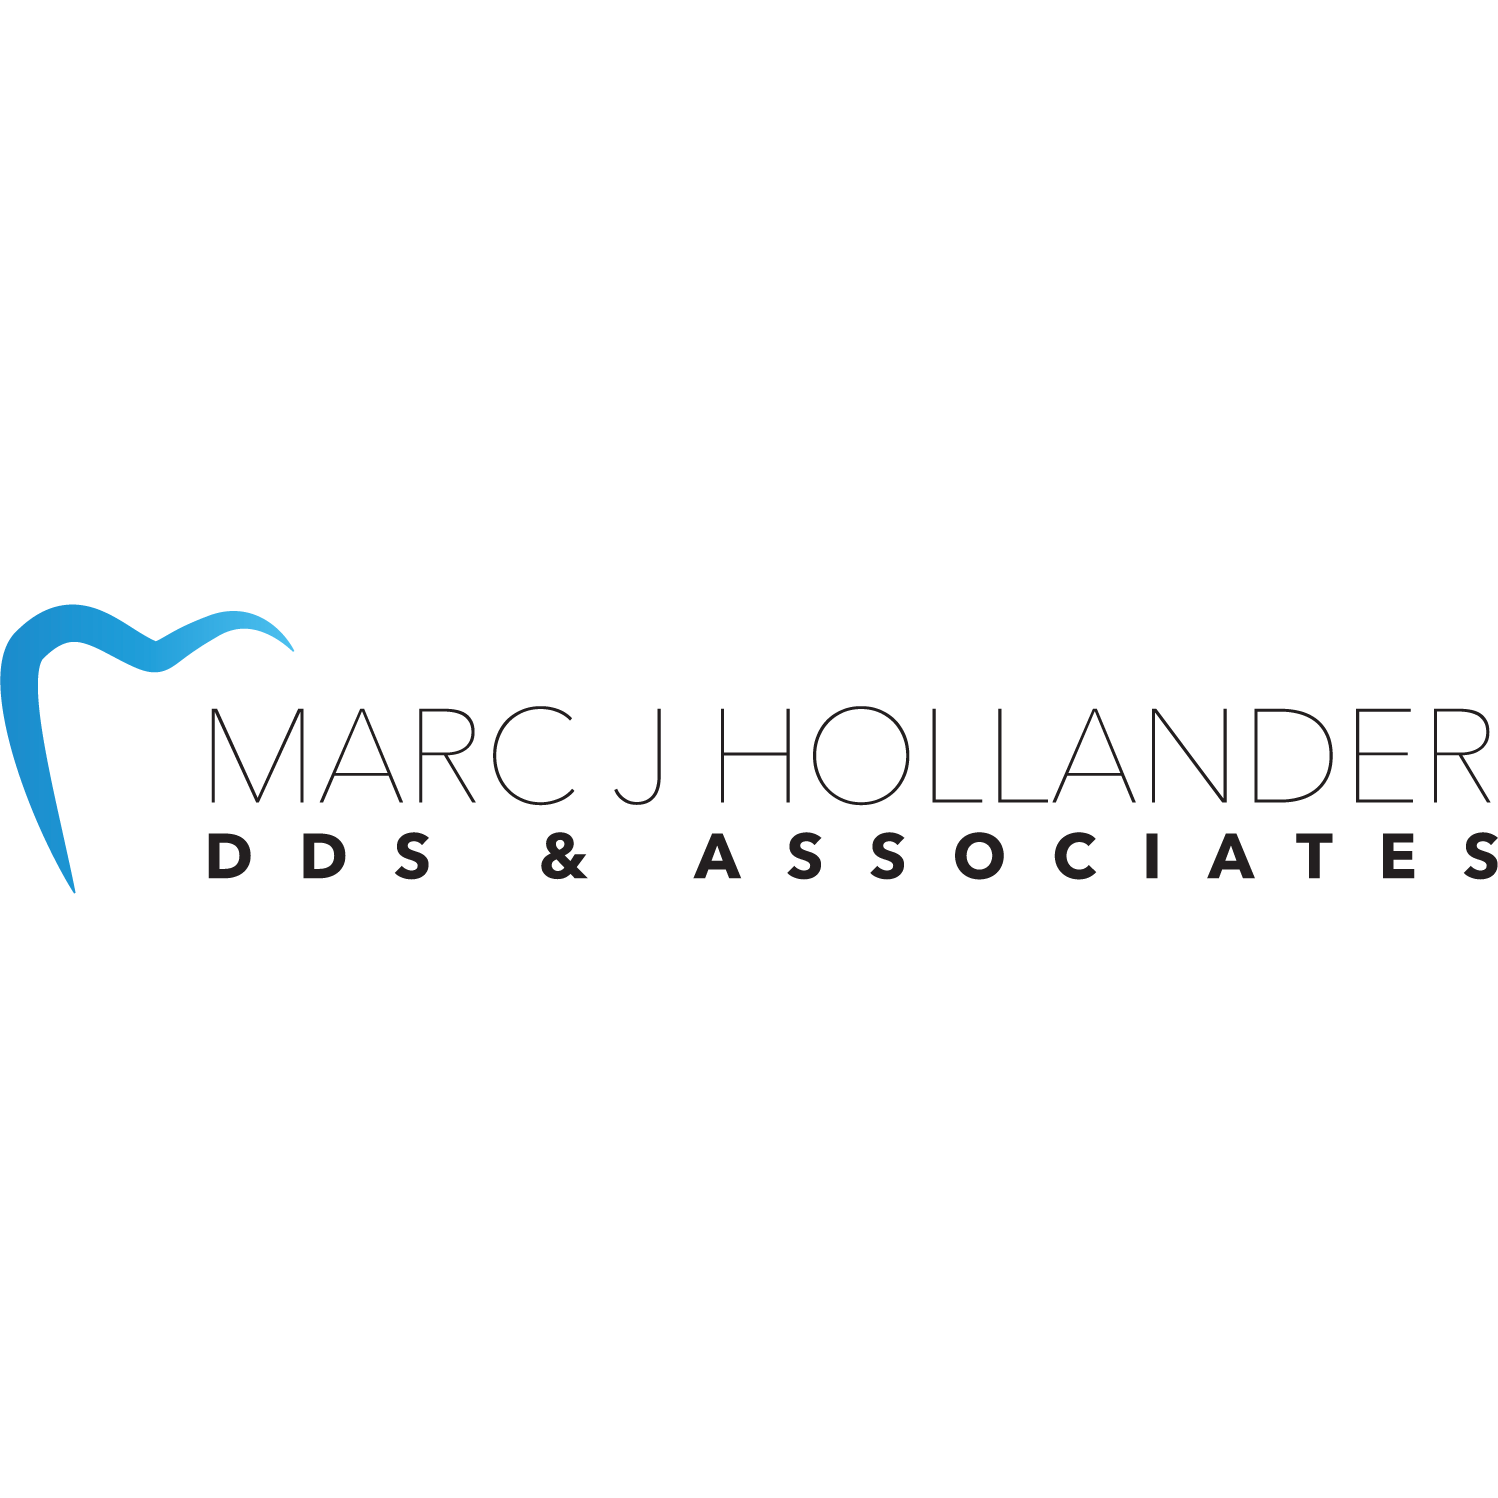 Marc J Hollander DDS & Associates image 4